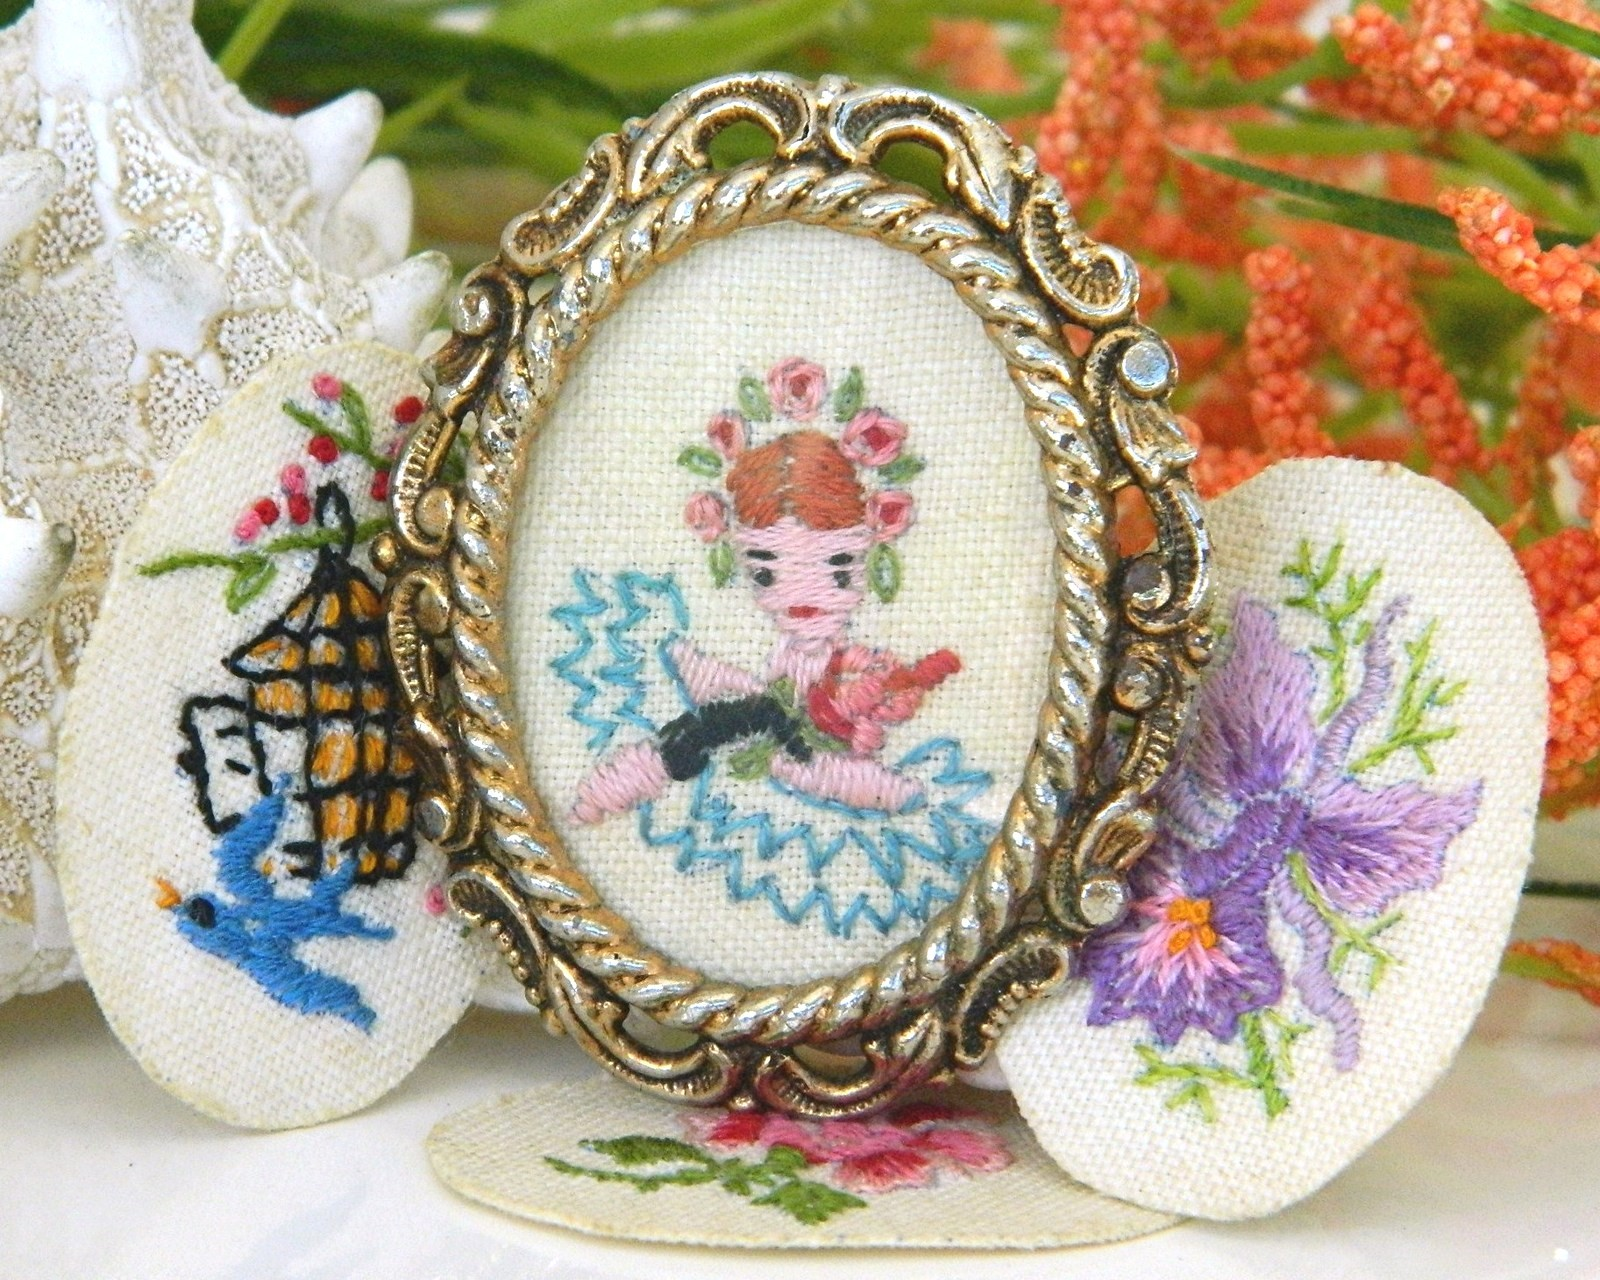 Vintage Embroidered Oval Picture Frame Brooch Pin Flowers Girl